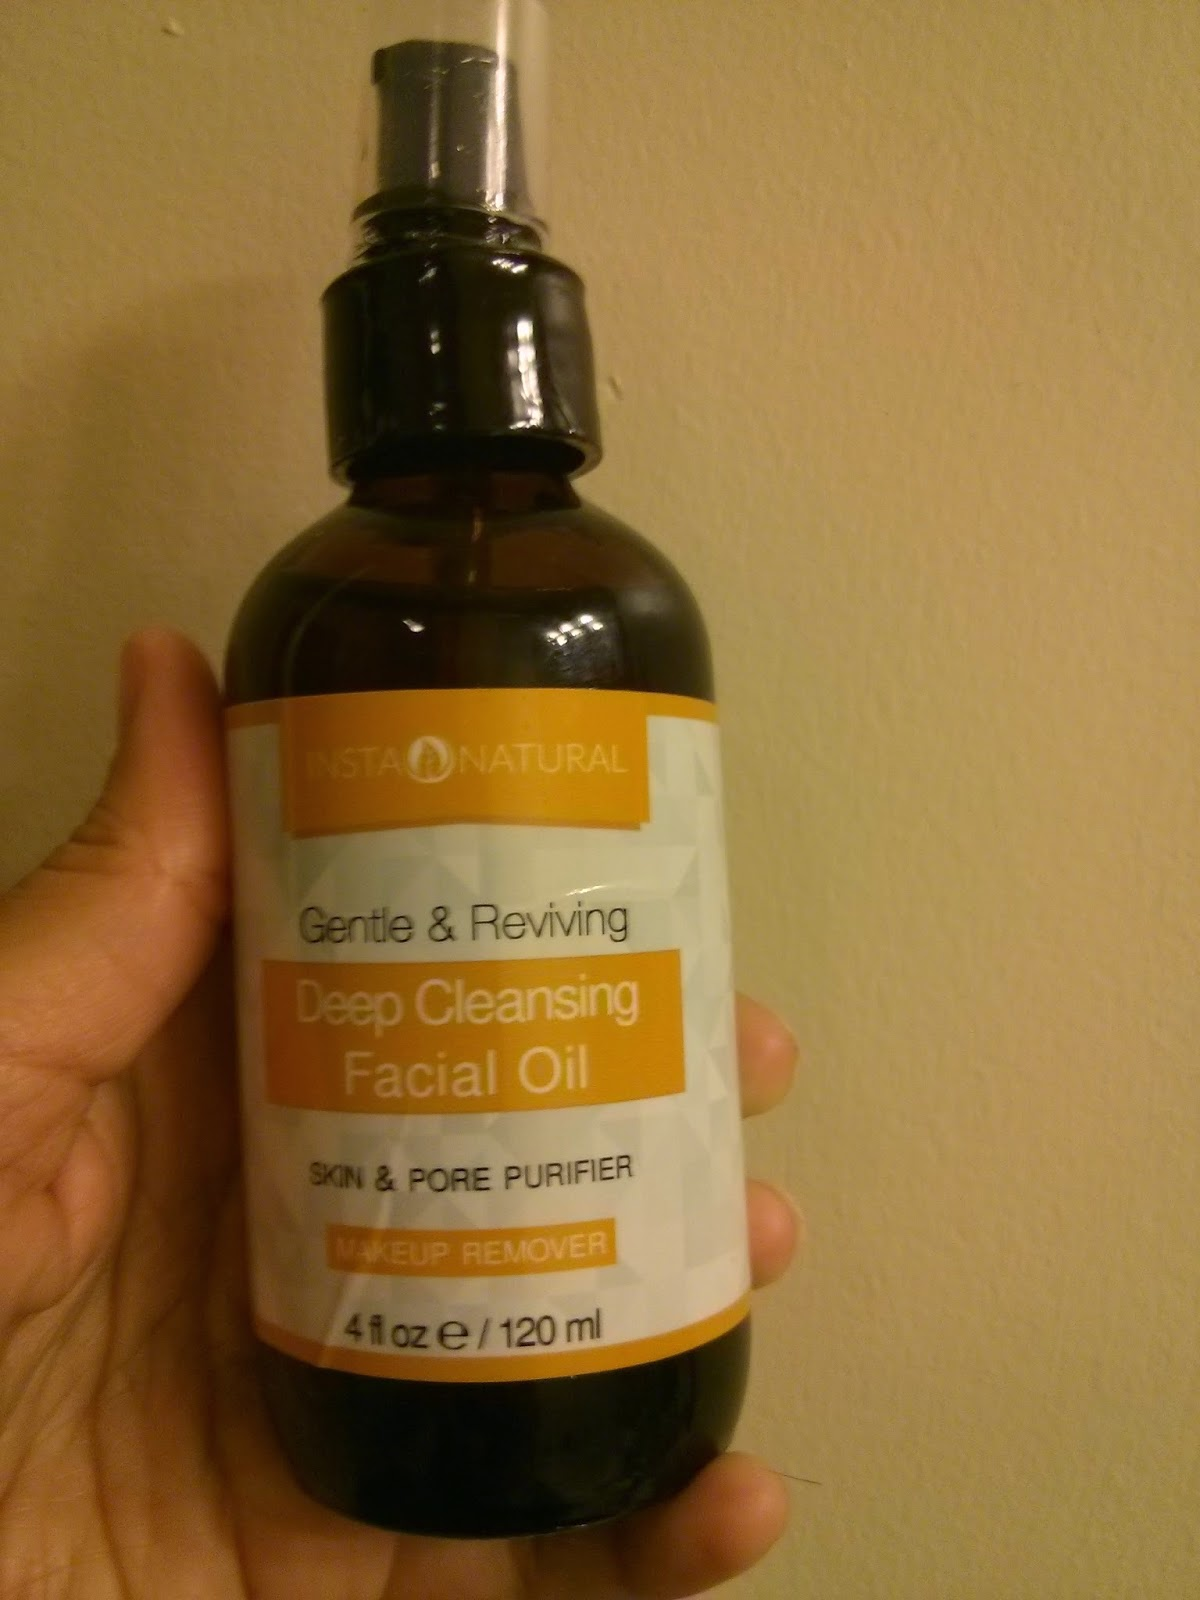 Facial deep cleansing oil products that